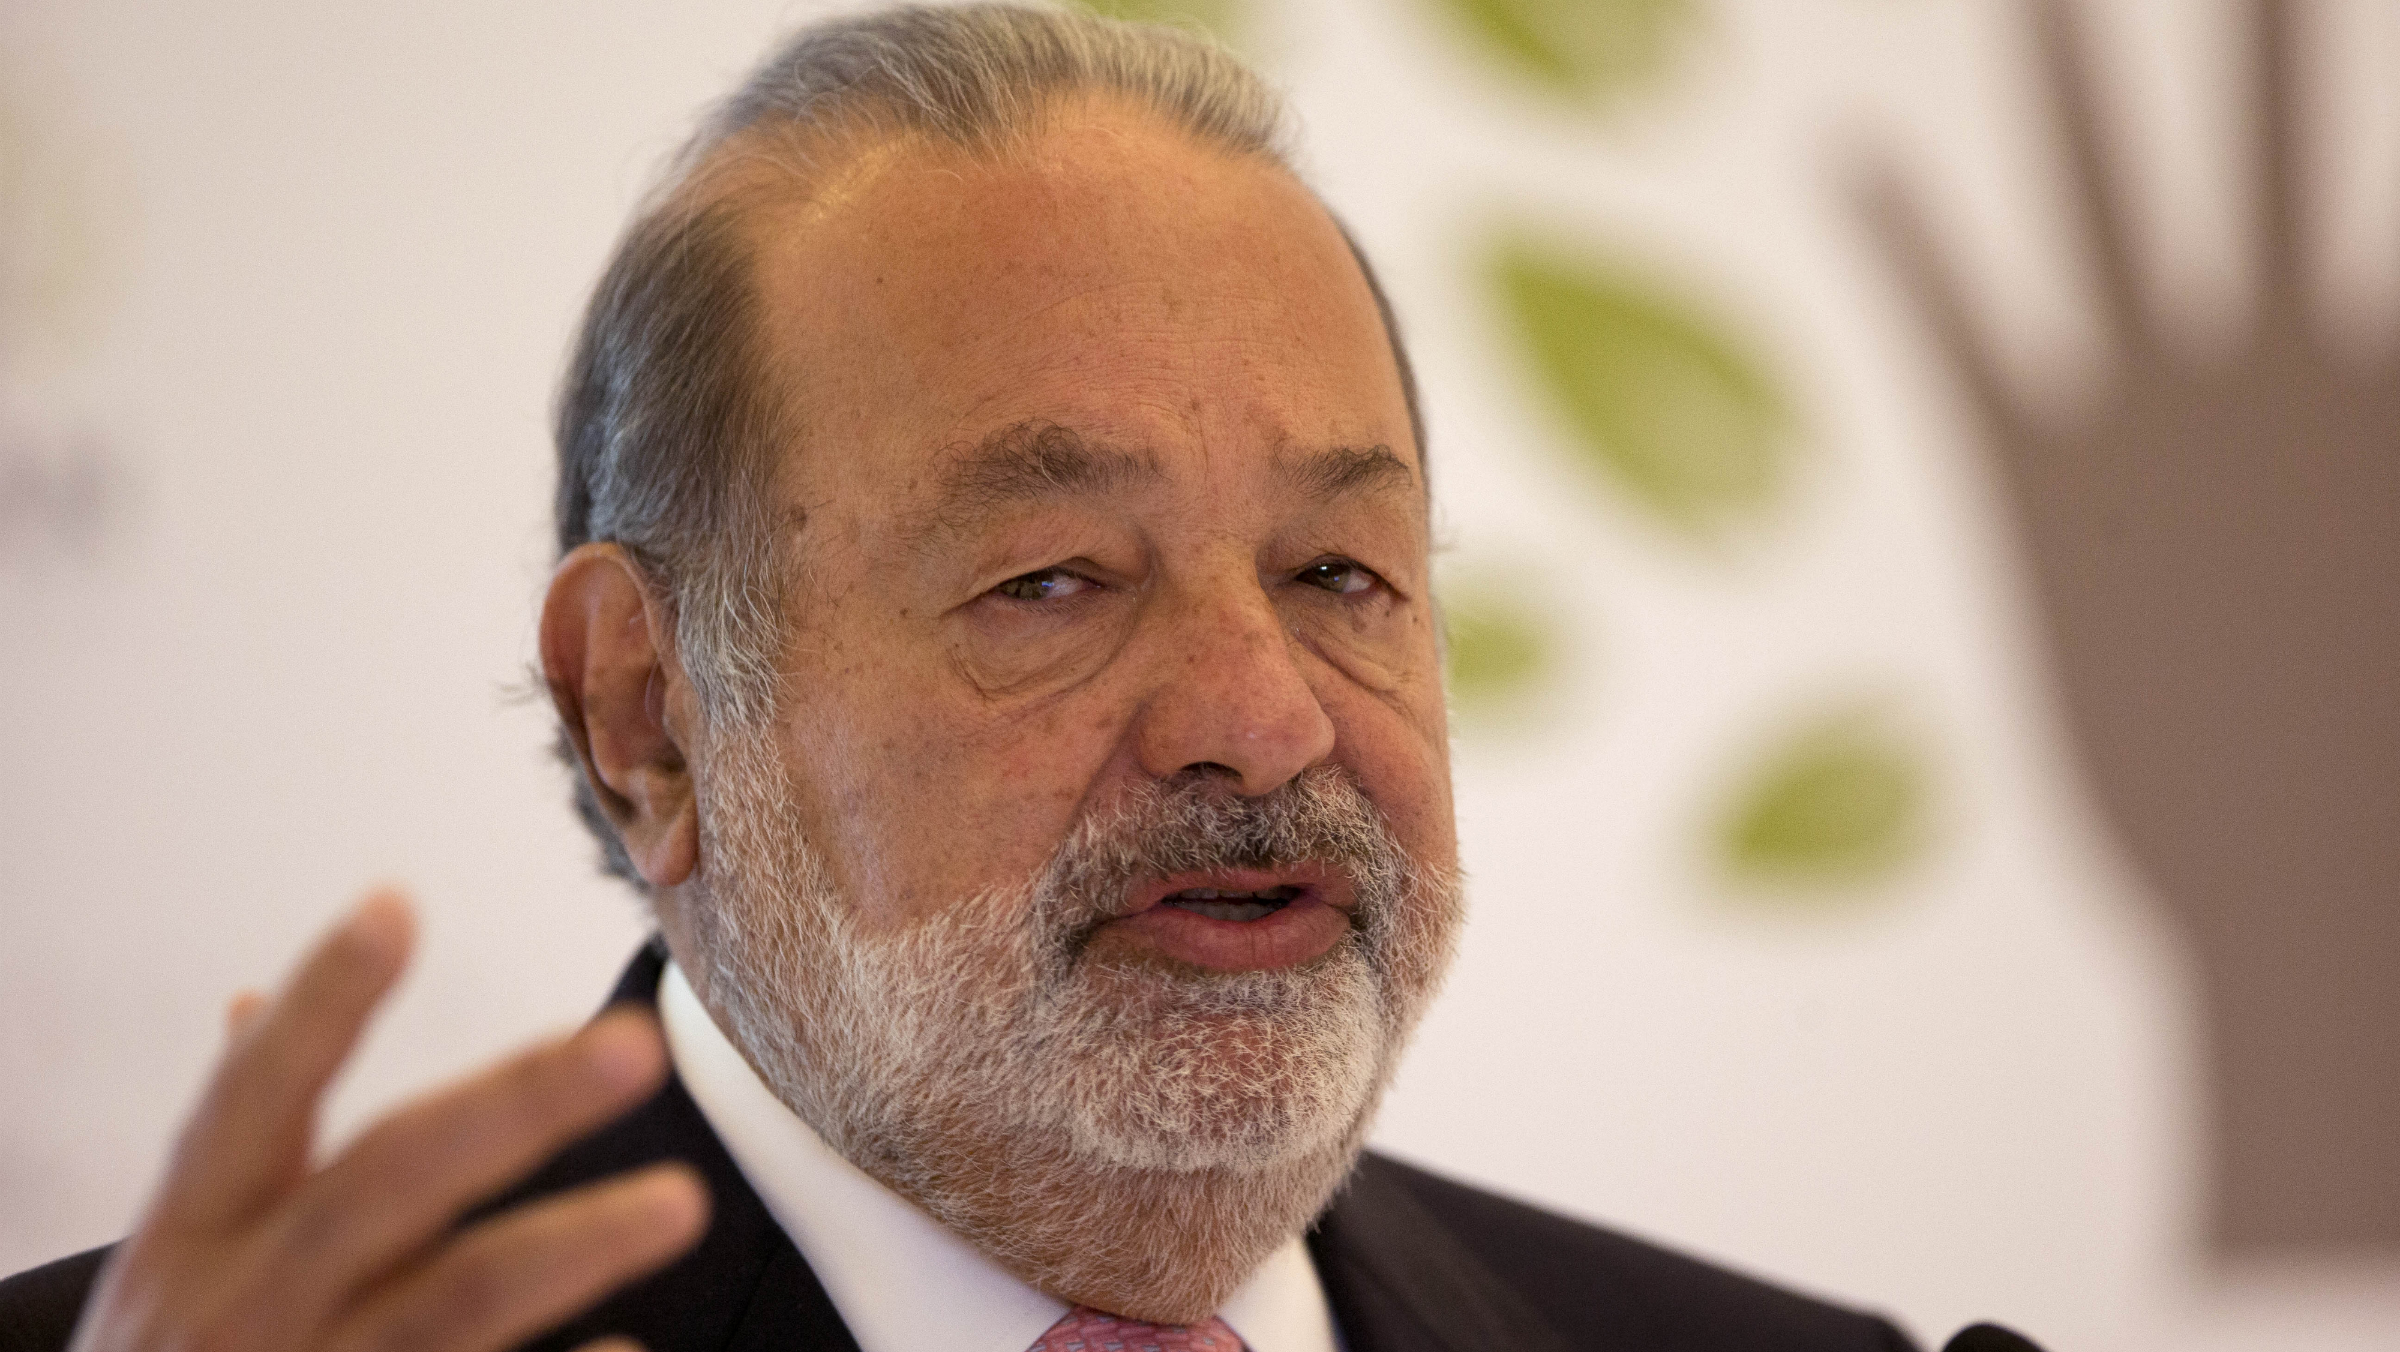 Mexican telecommunications tycoon Carlos Slim speaks during news conference at the Soumaya museum in Mexico City,Monday, Jan. 14, 2013. Slim announced an educational partnership between his Carlos Slim Foundation with the Khan Academy. (AP Photo/Dario Lopez-Mills